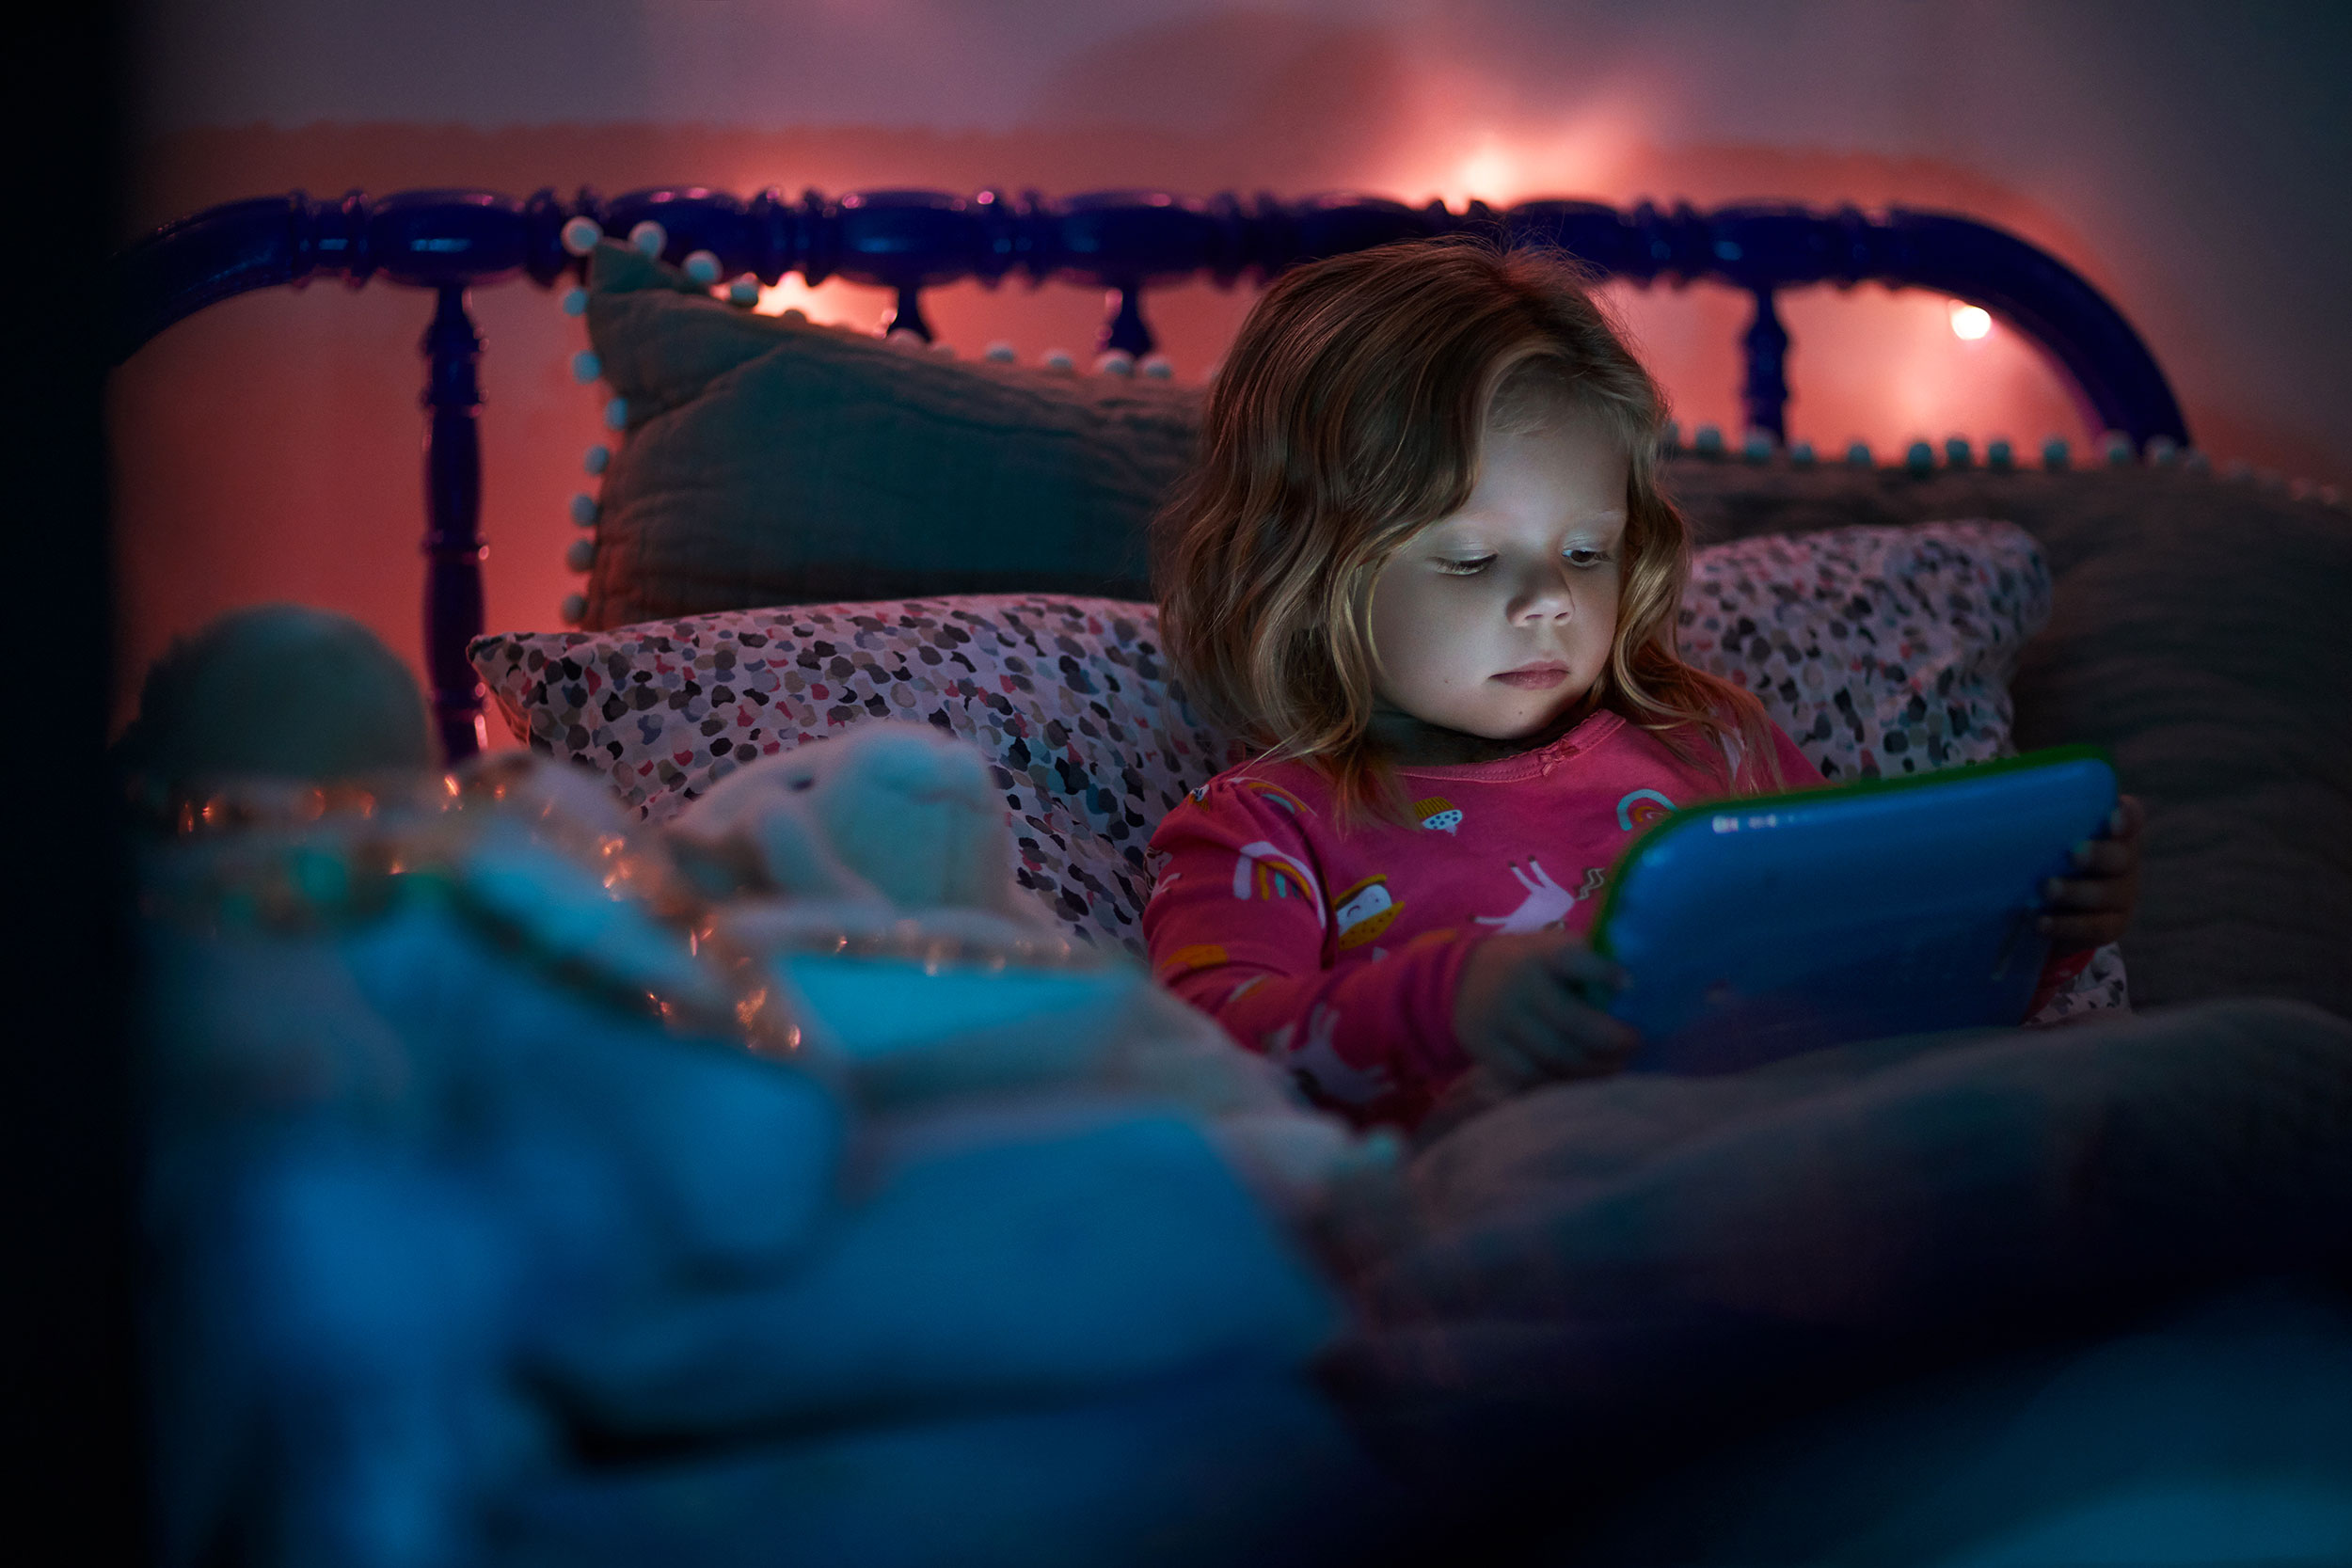 Natalia Weedy Calix a young White child in bed at night using a device rather than sleeping